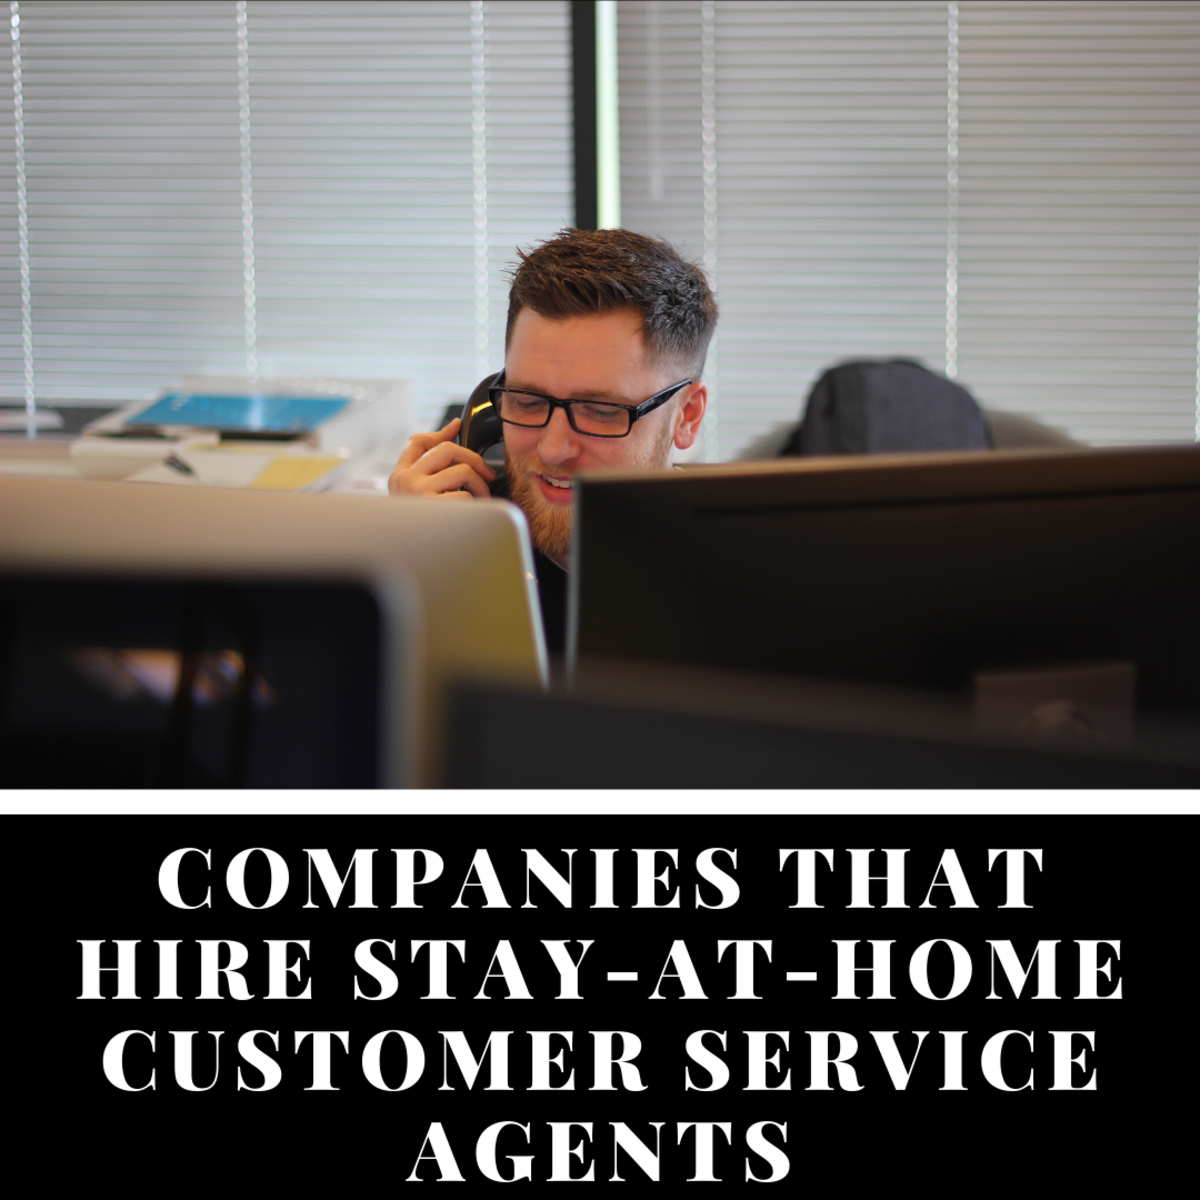 These companies all hire stay-at-home customer service agents.